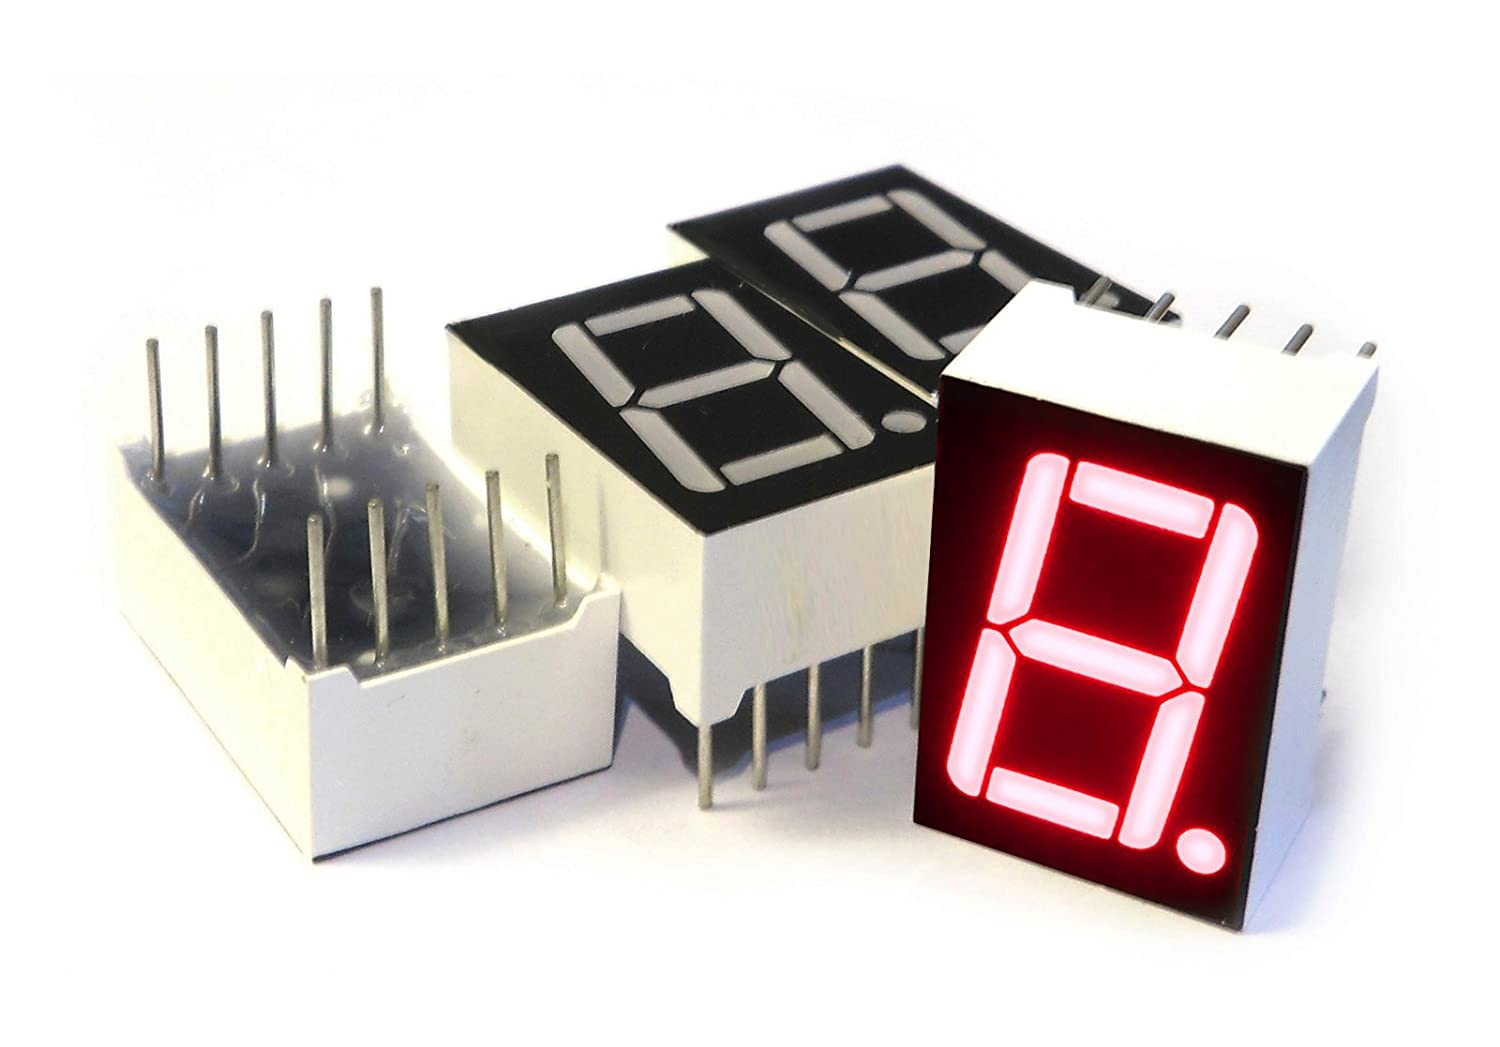 Pack of 4 1 Digit Red Common Anode microtivity IS112 7-segment LED Display